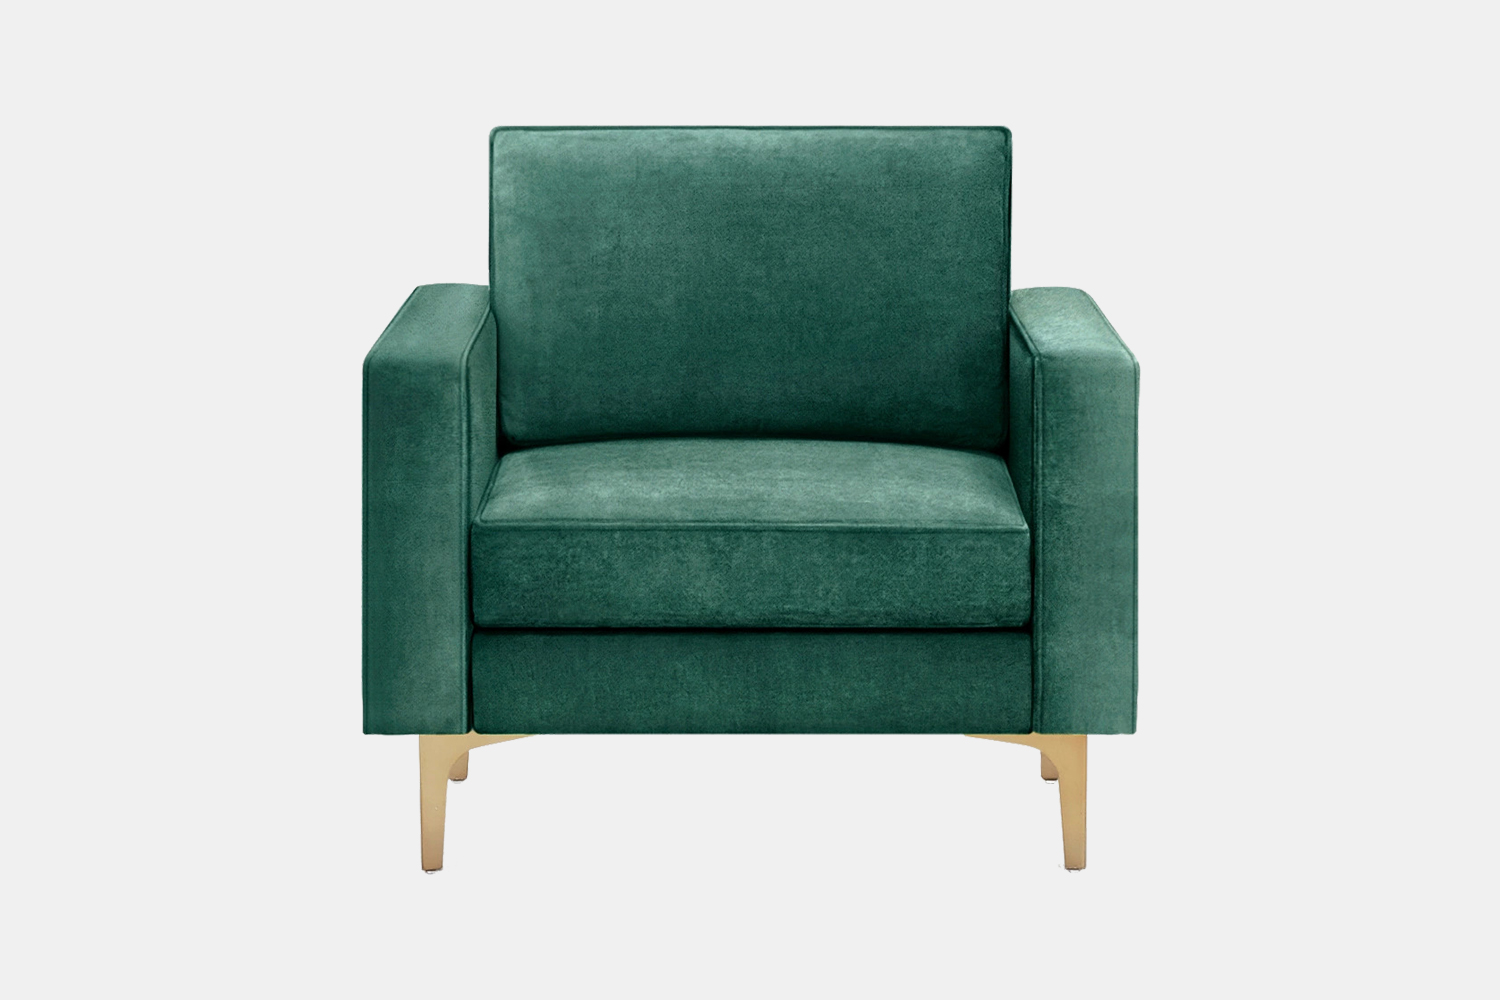 The Burrow Nomad Velvet Armchair in green with metal legs